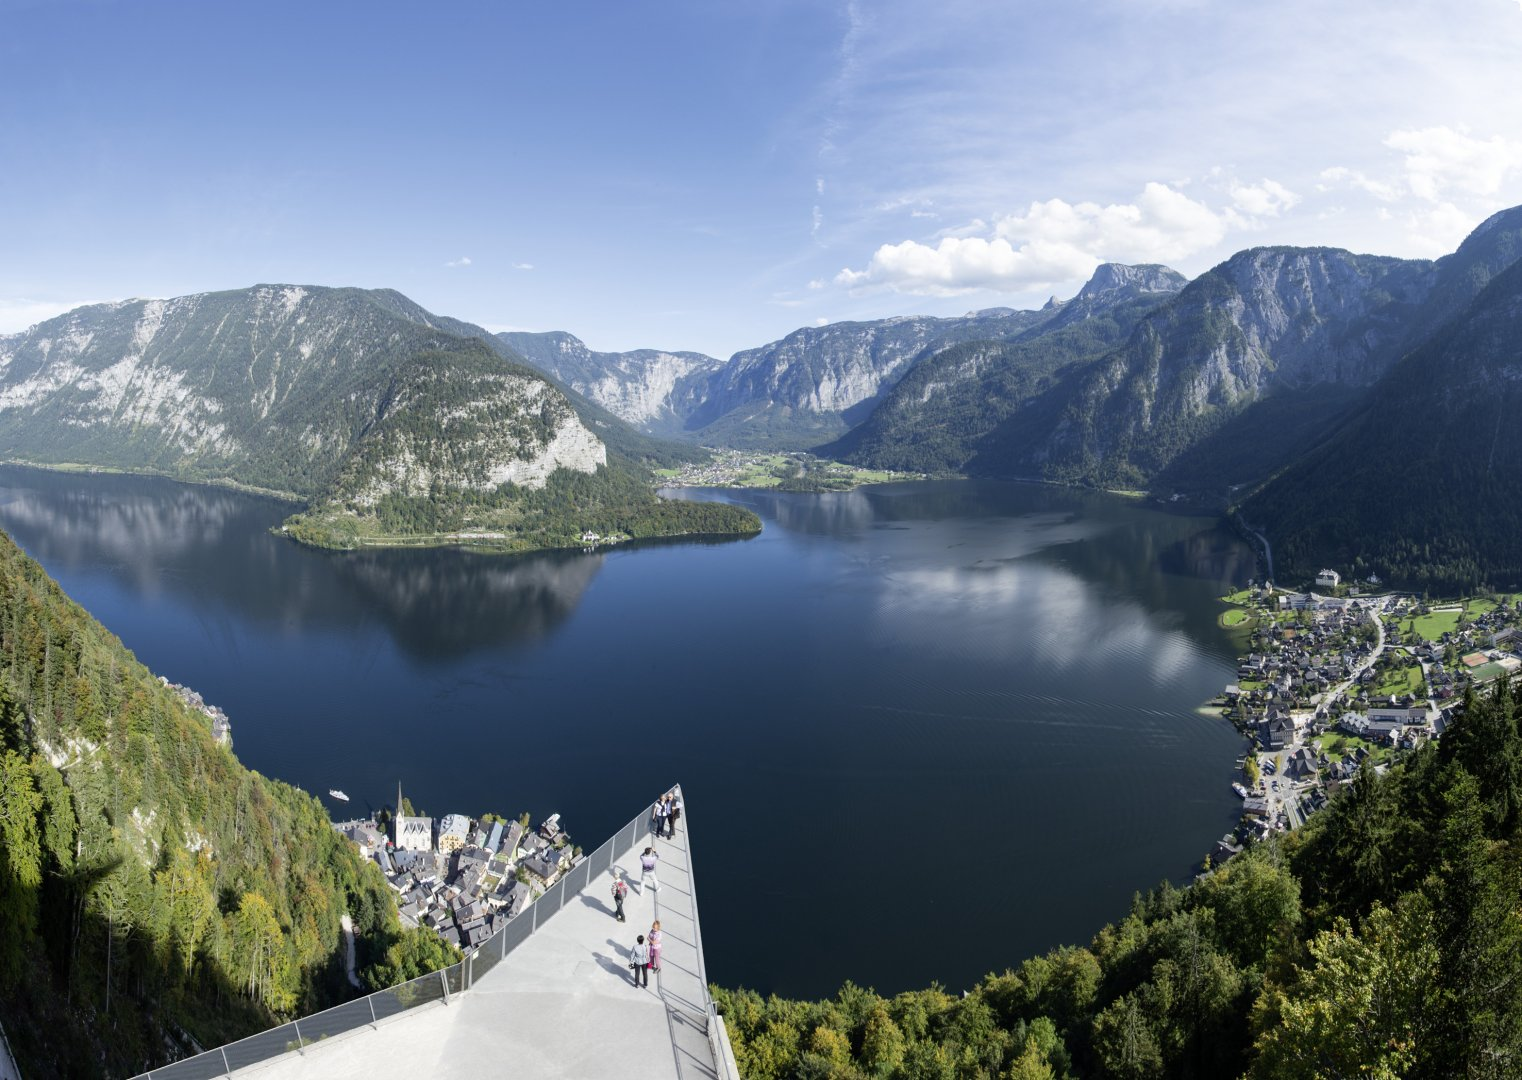 Our absolute VIP Tour. Experience Hallstatt like no one else. See what others don't get to see.